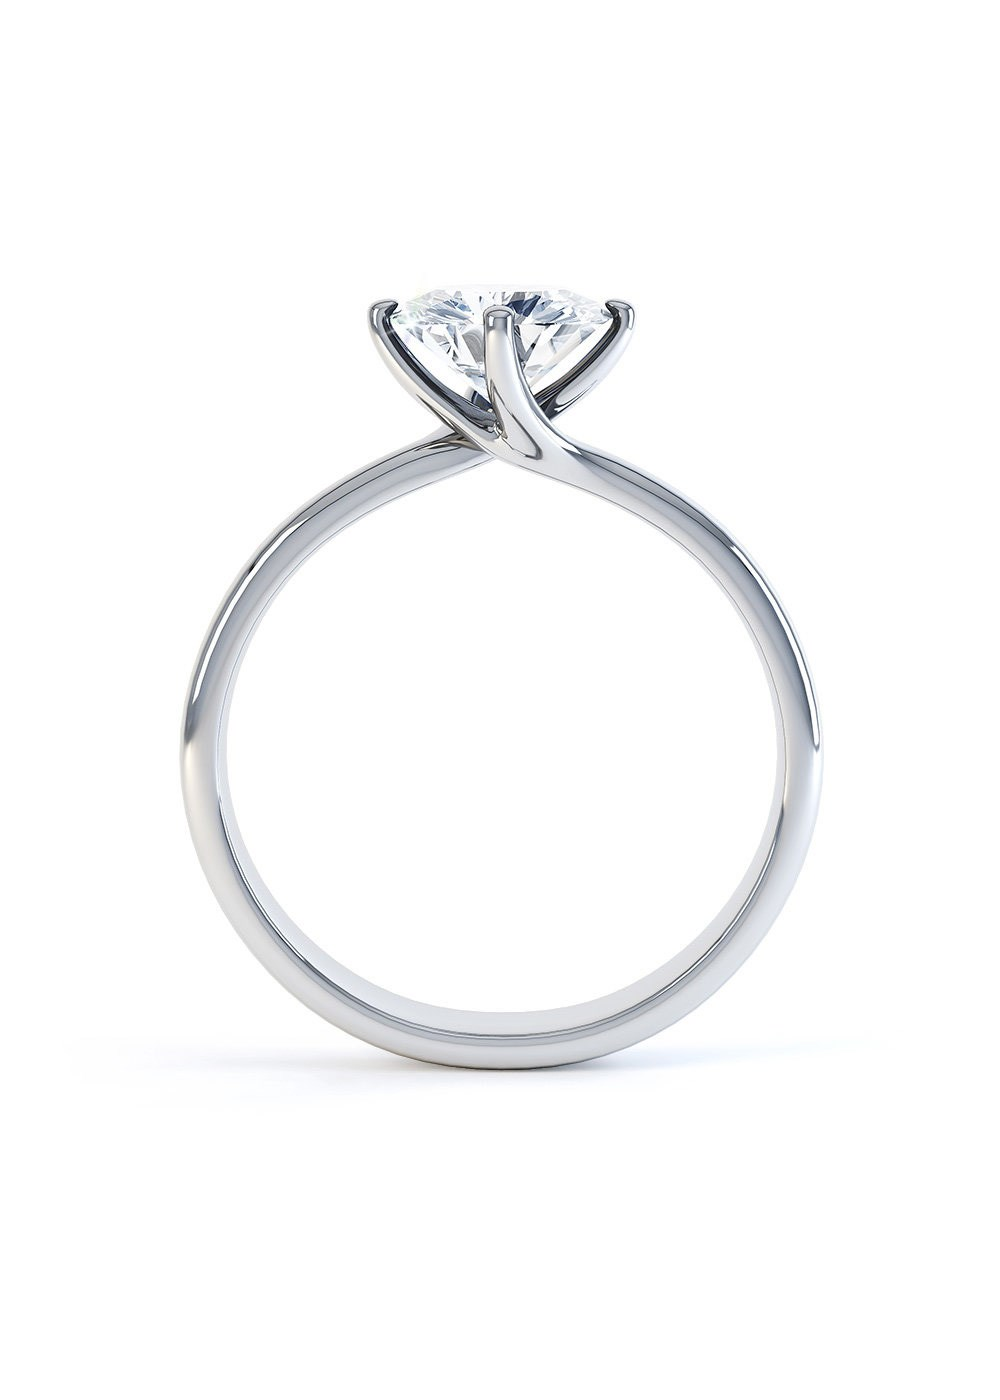 Contemporary Solitaire Rings